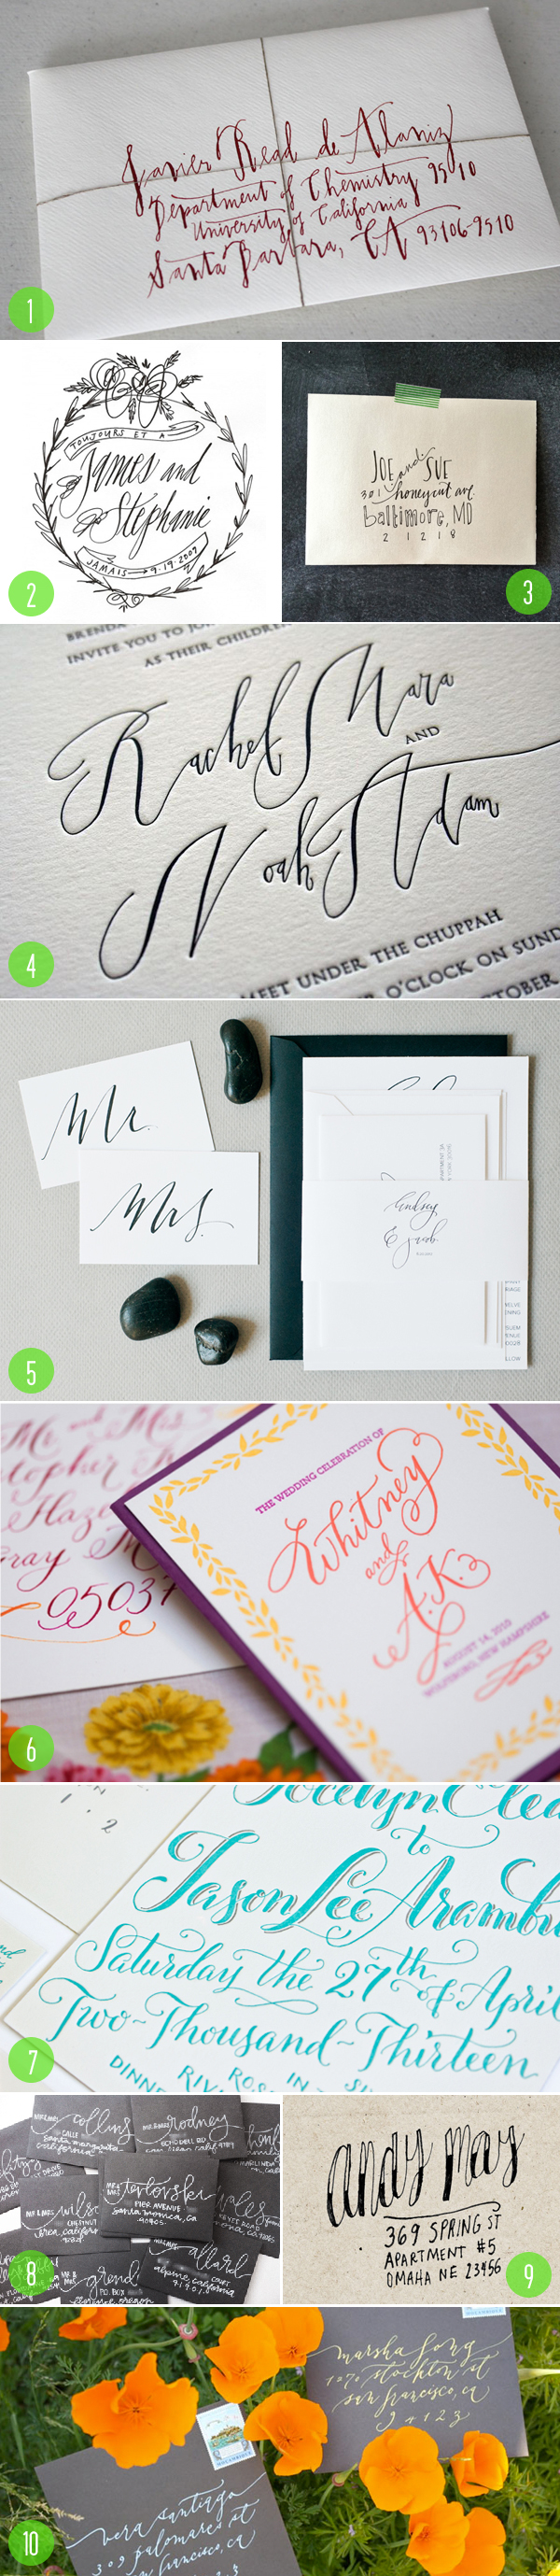 top 10: modern calligraphy 3